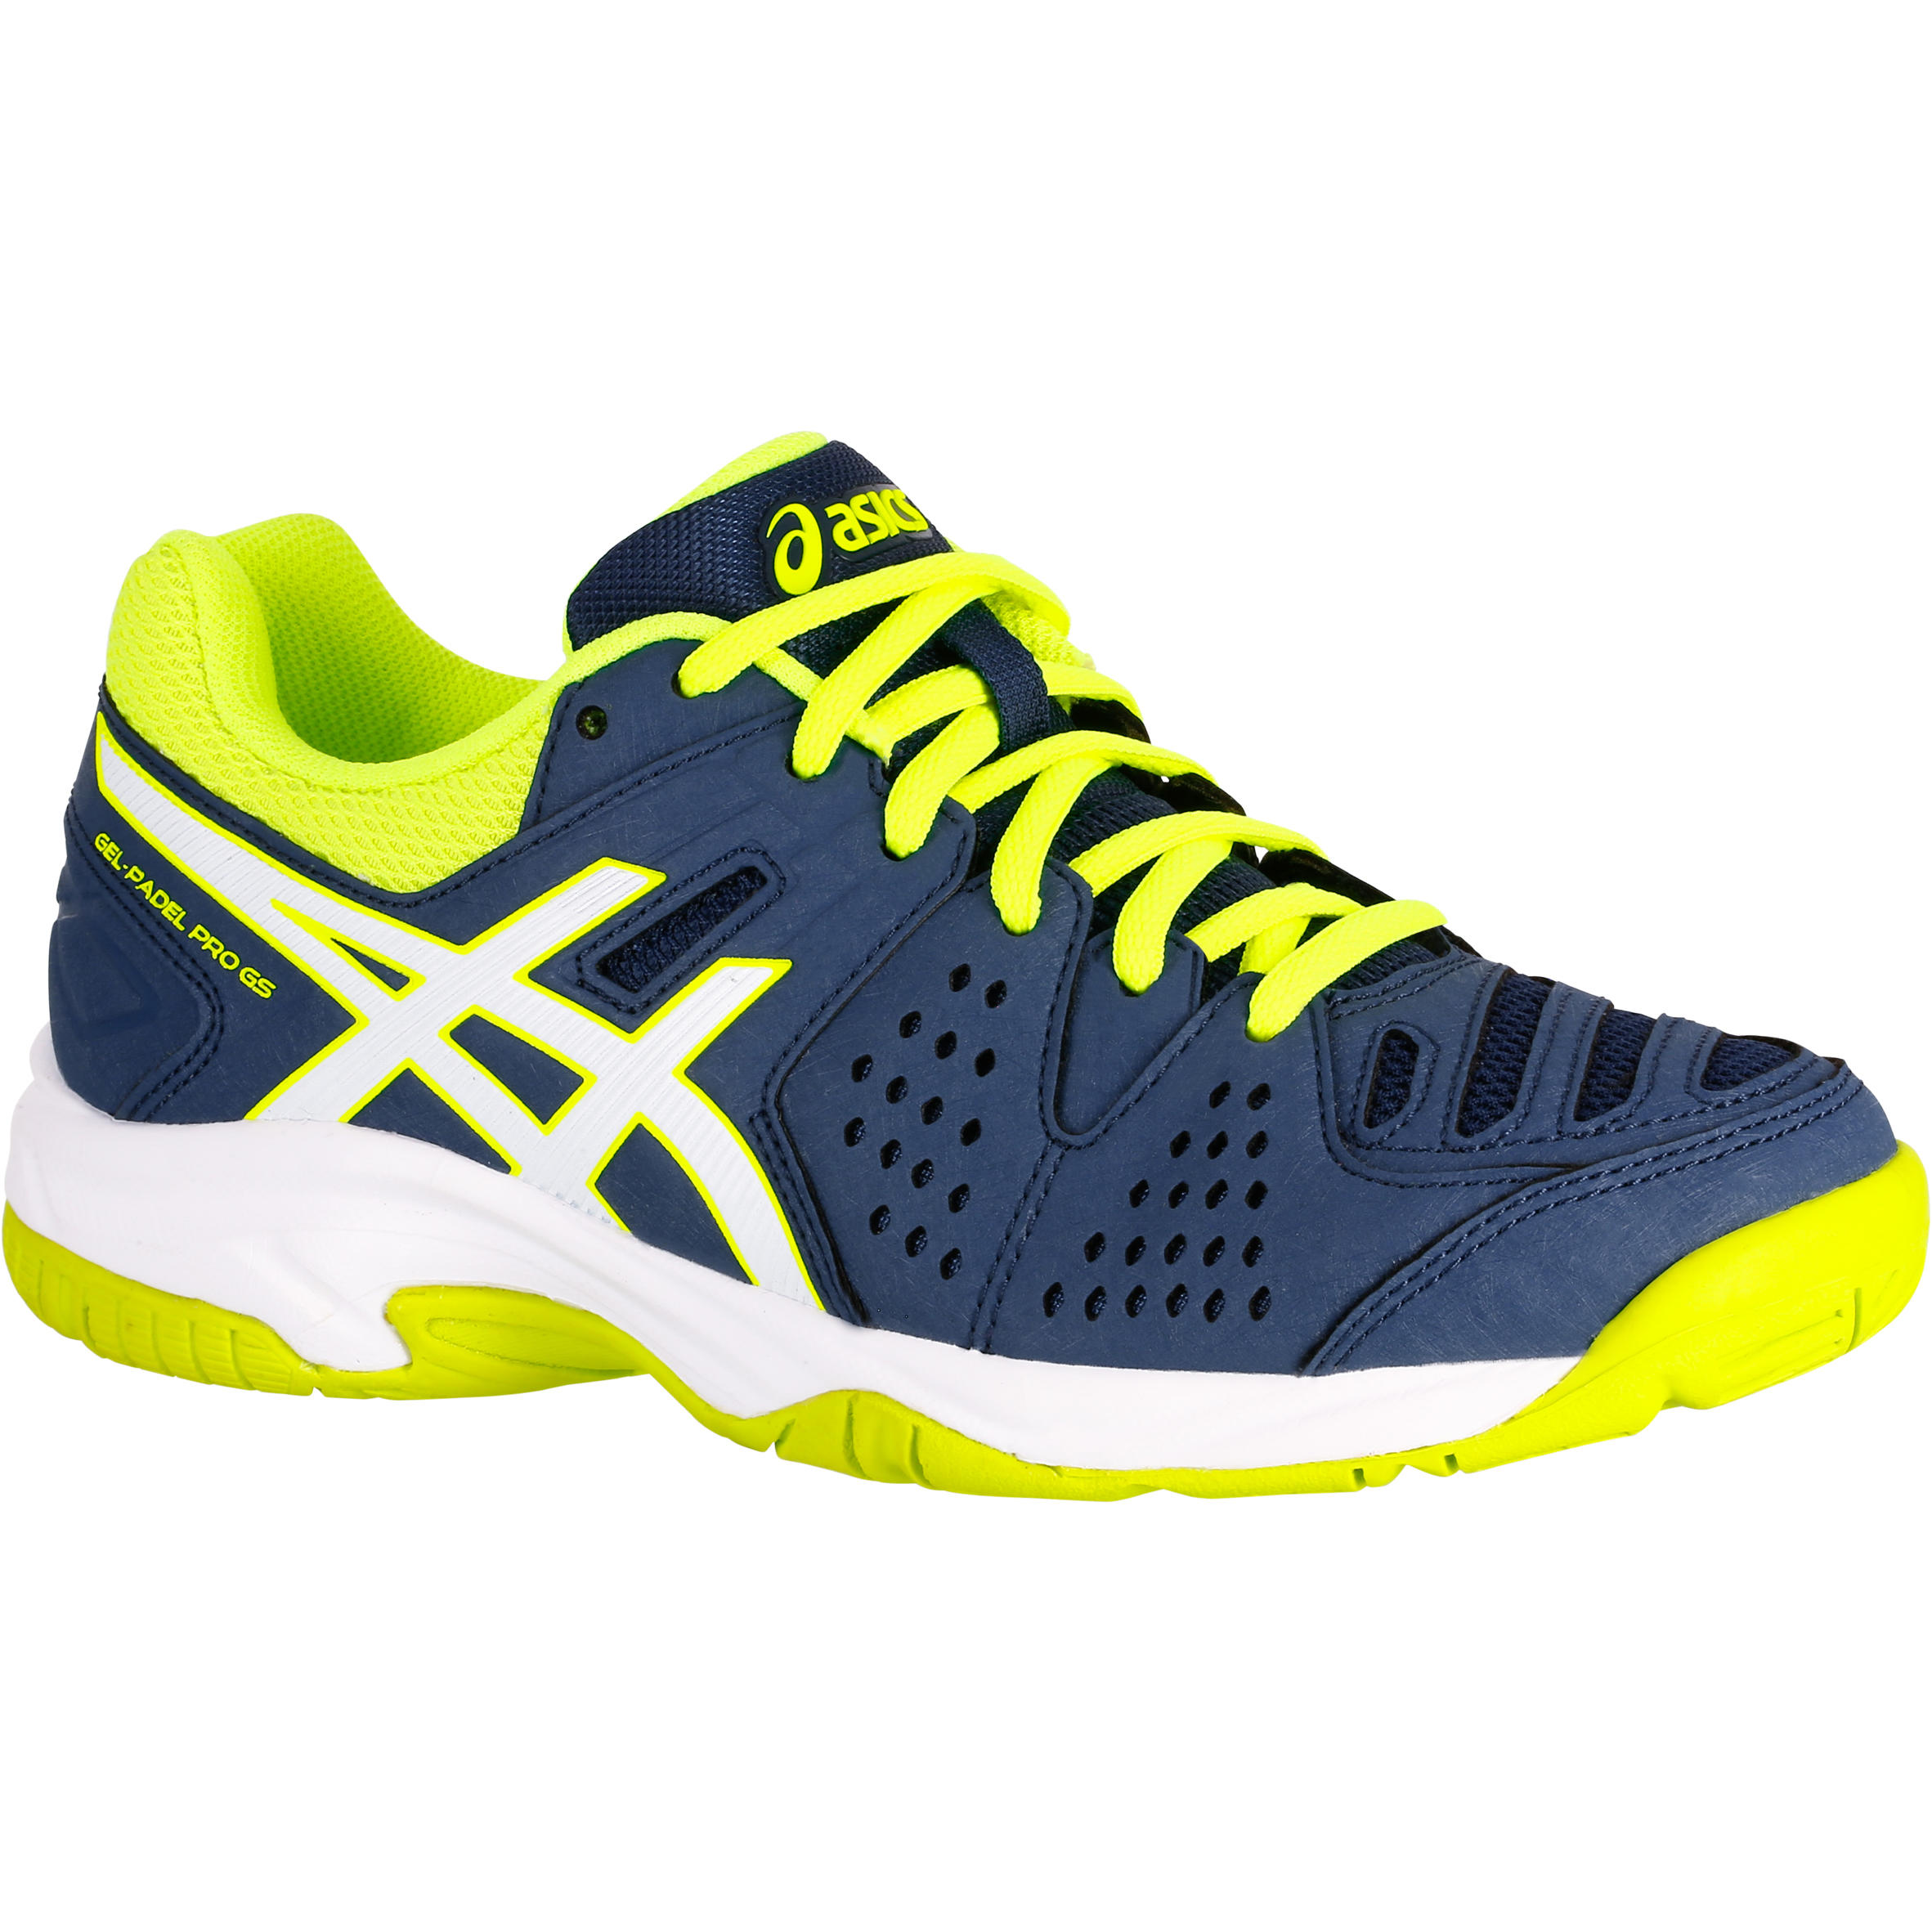 asics tennis shoes junior uk